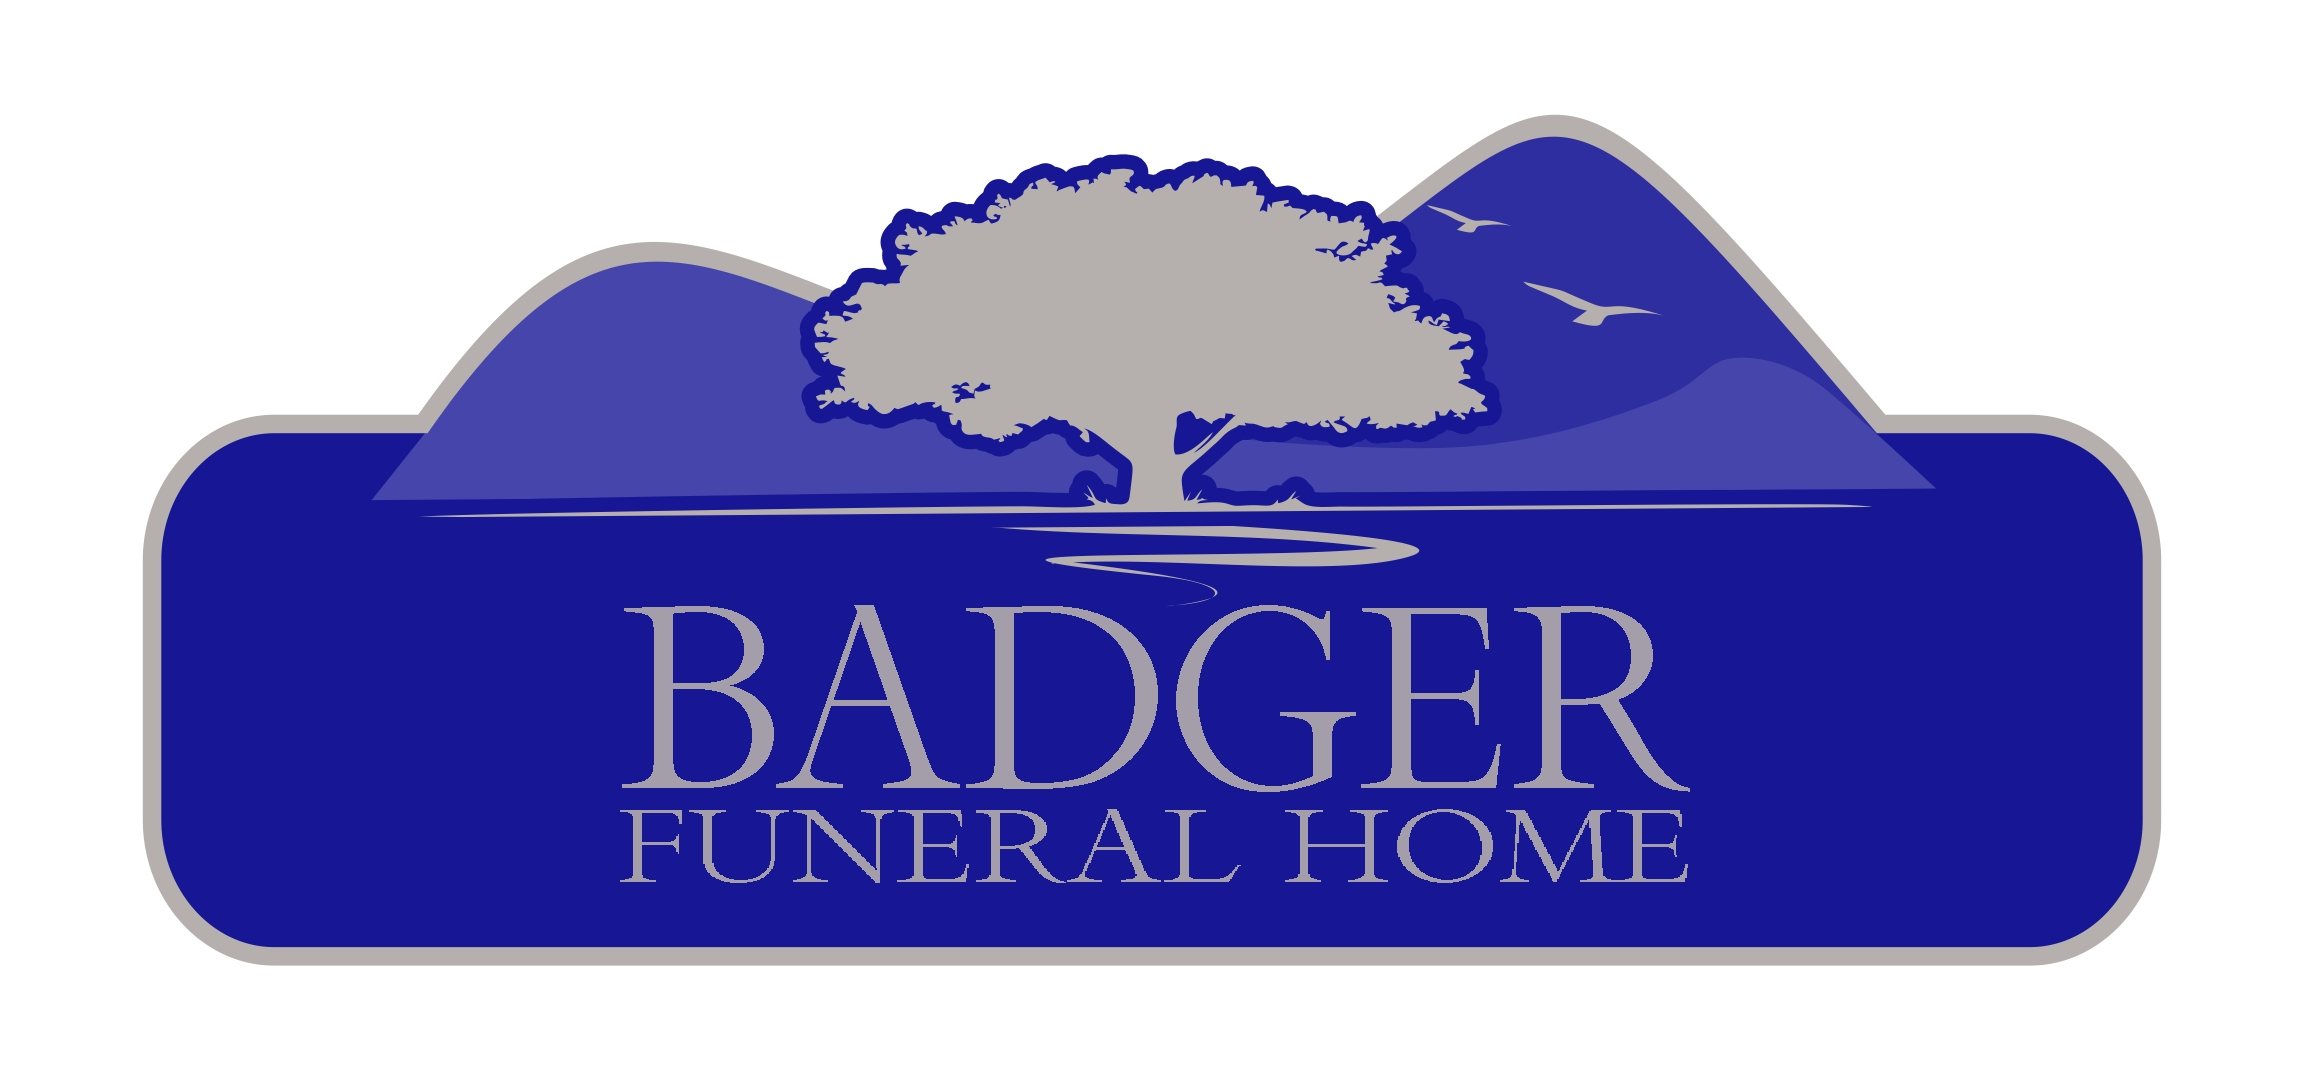 Badger Funeral Home logo